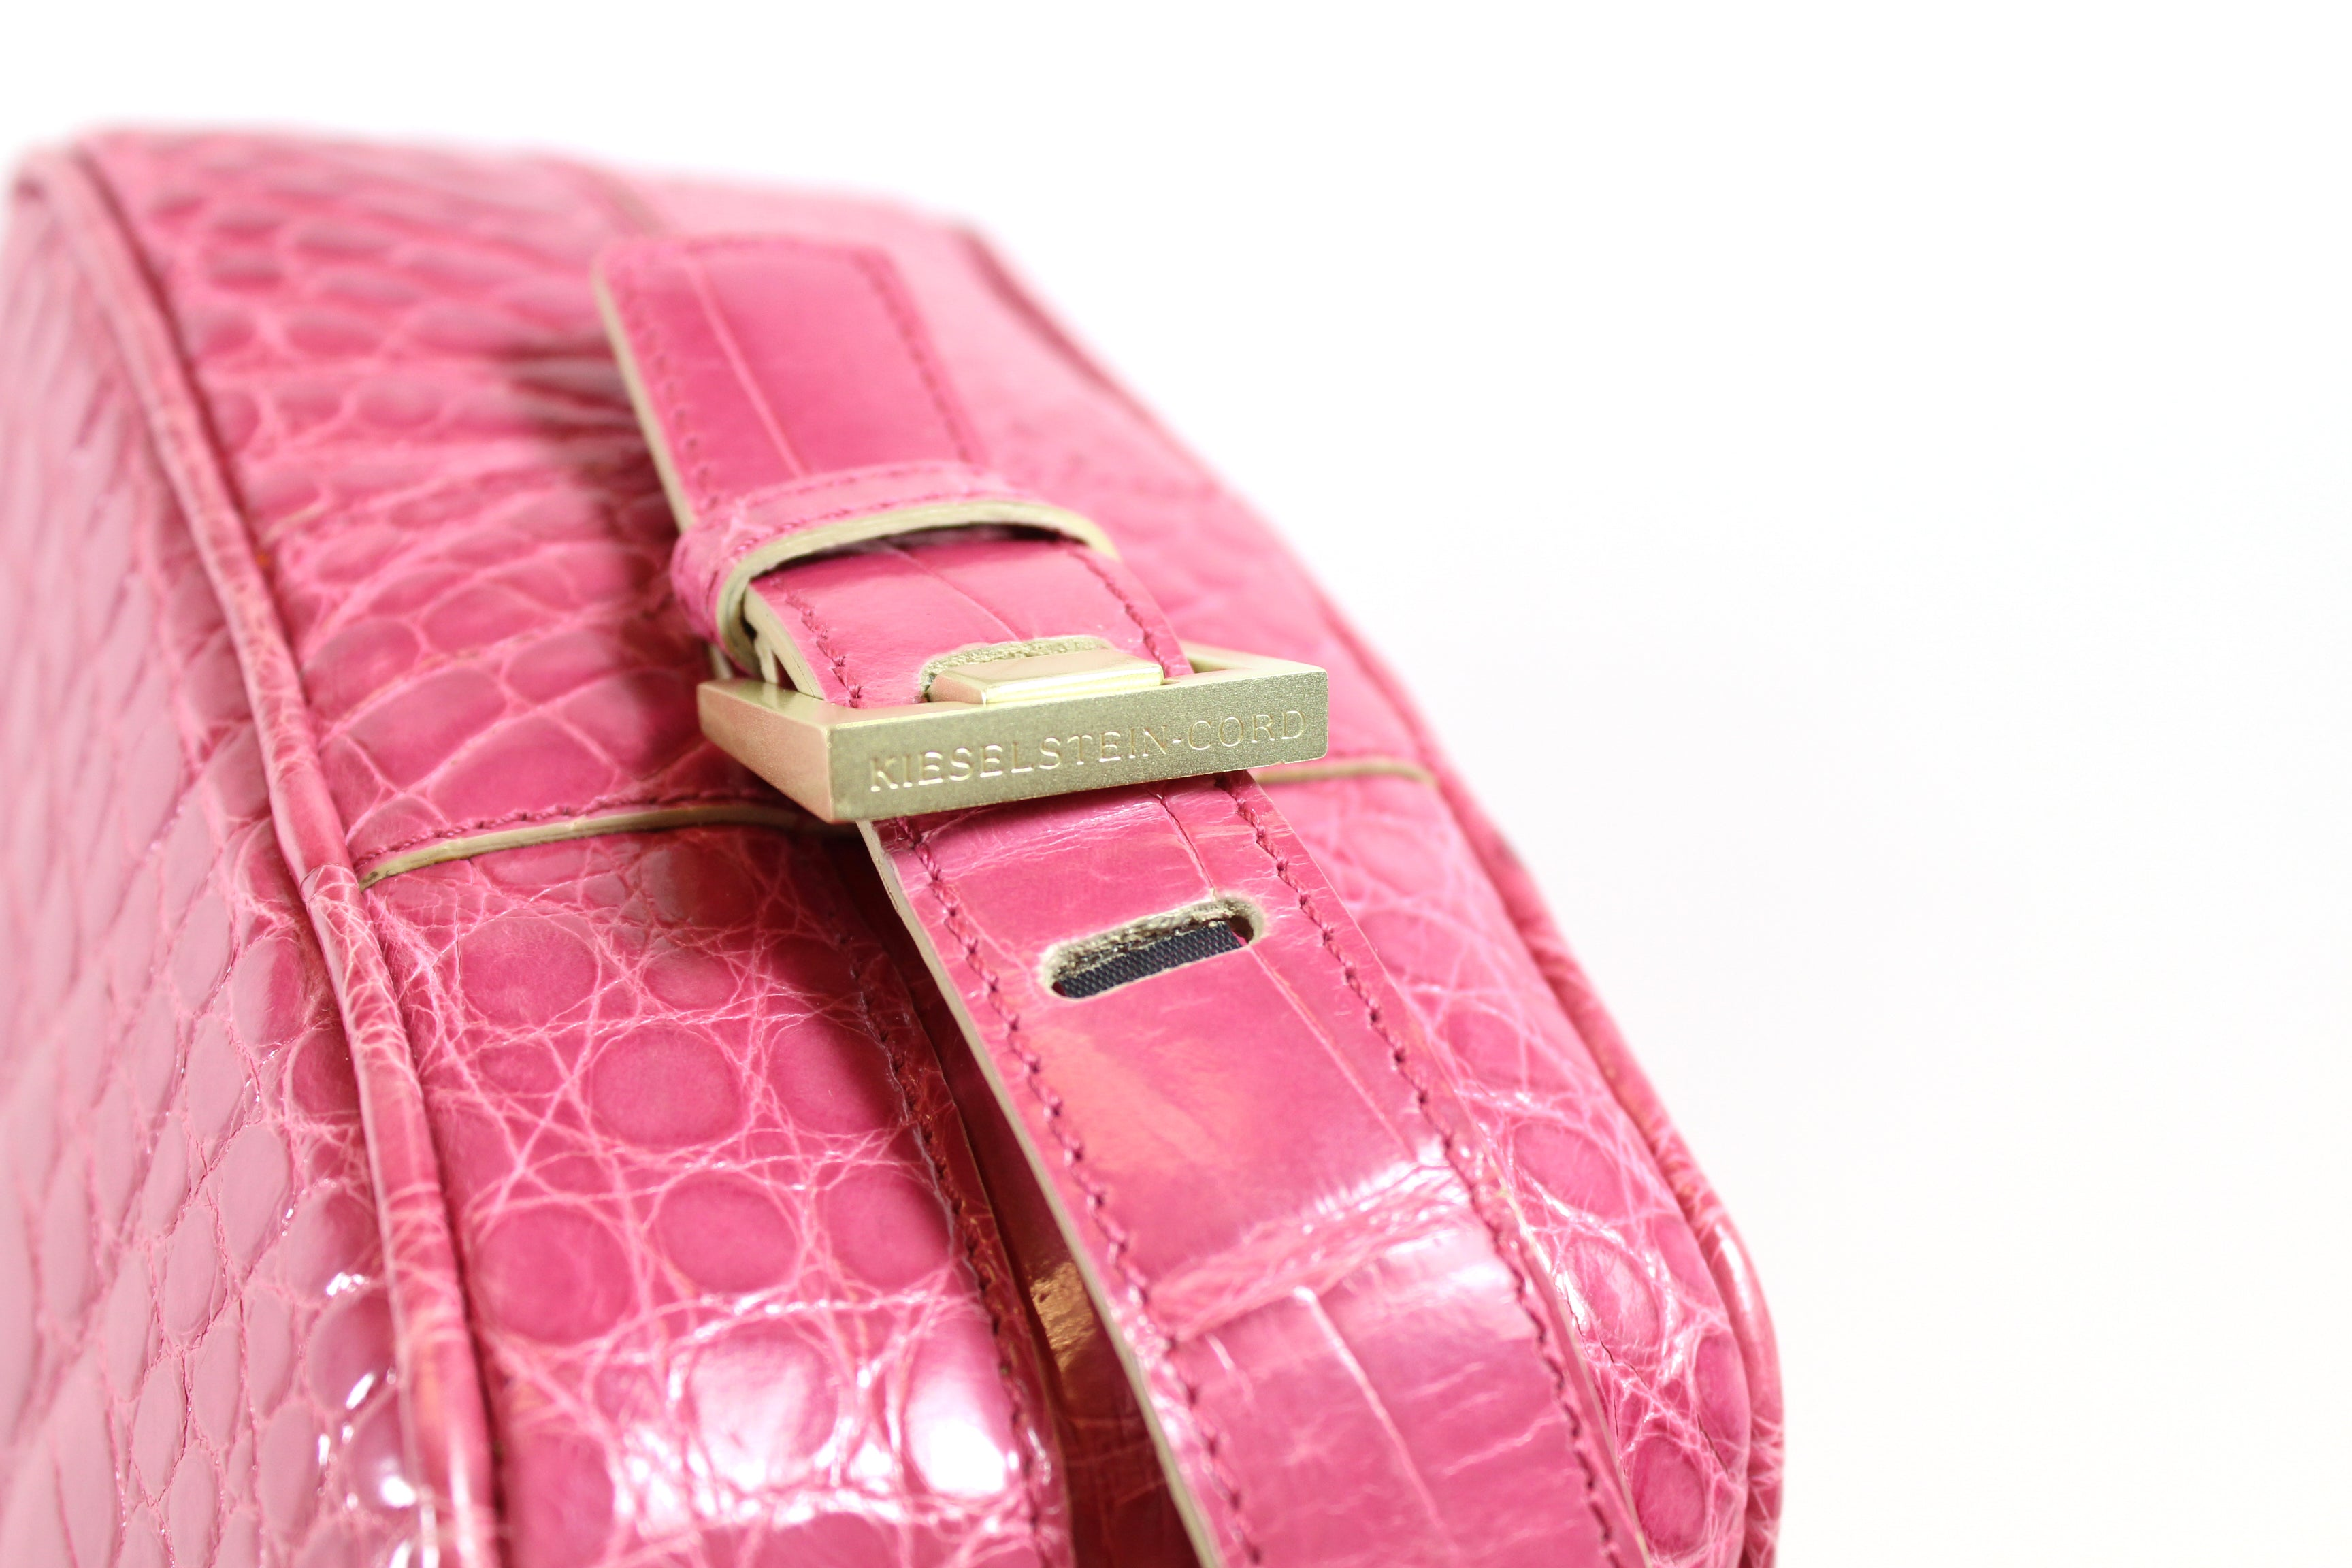 Barry Kieselstein-Cord Guava Patent Alligator Bag